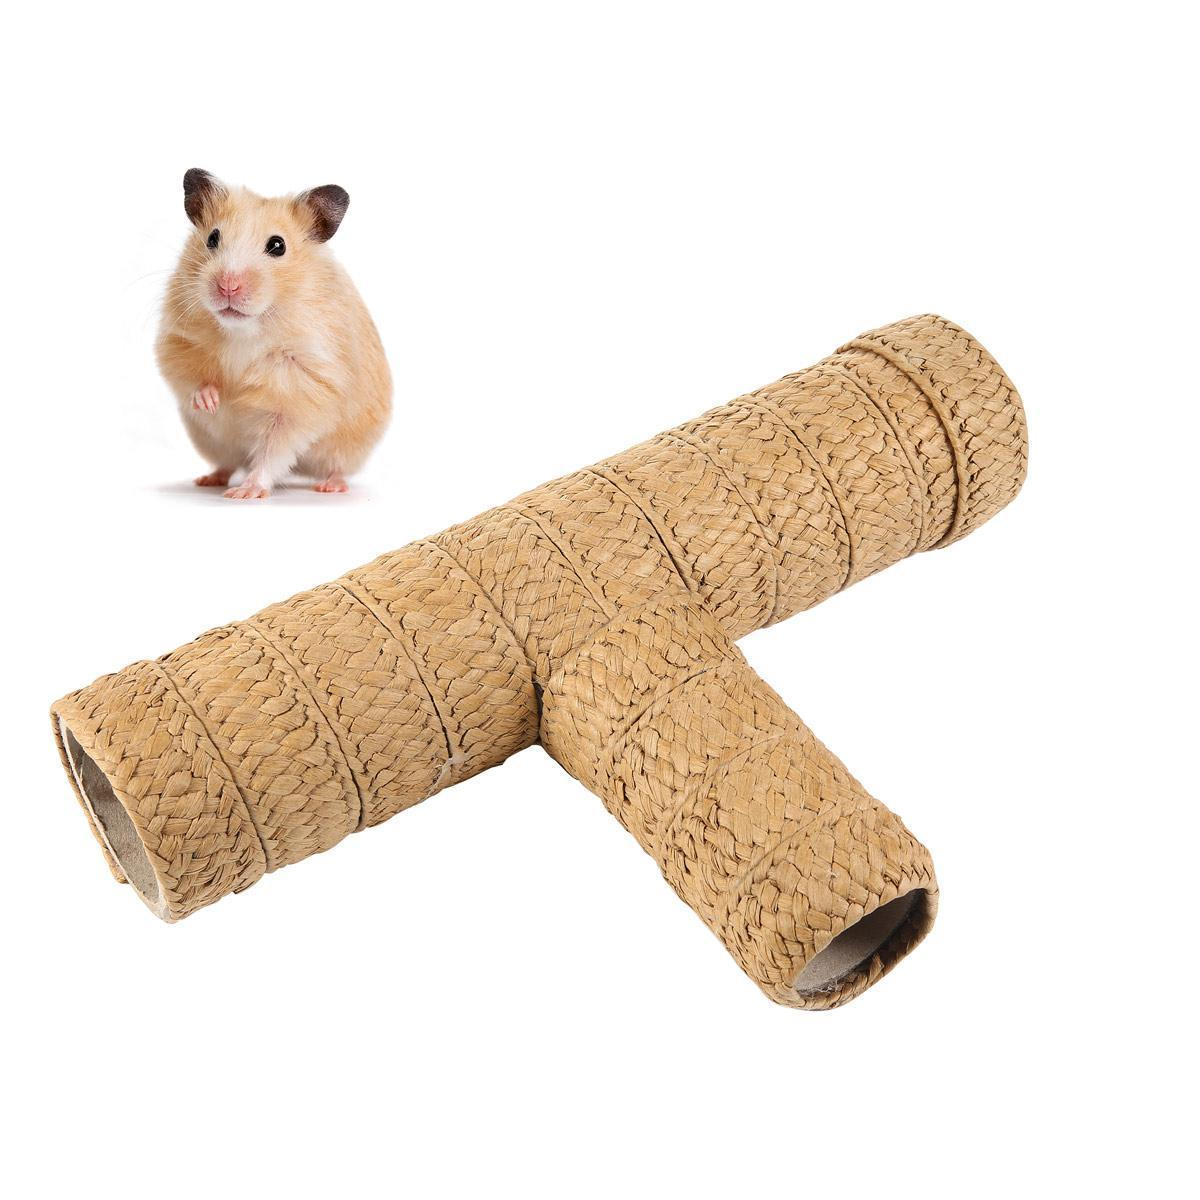 Small pet supplies hamsters can smash the paper tube hamster tunnel climb  pet channel hamster tunnel nest tunnel toy